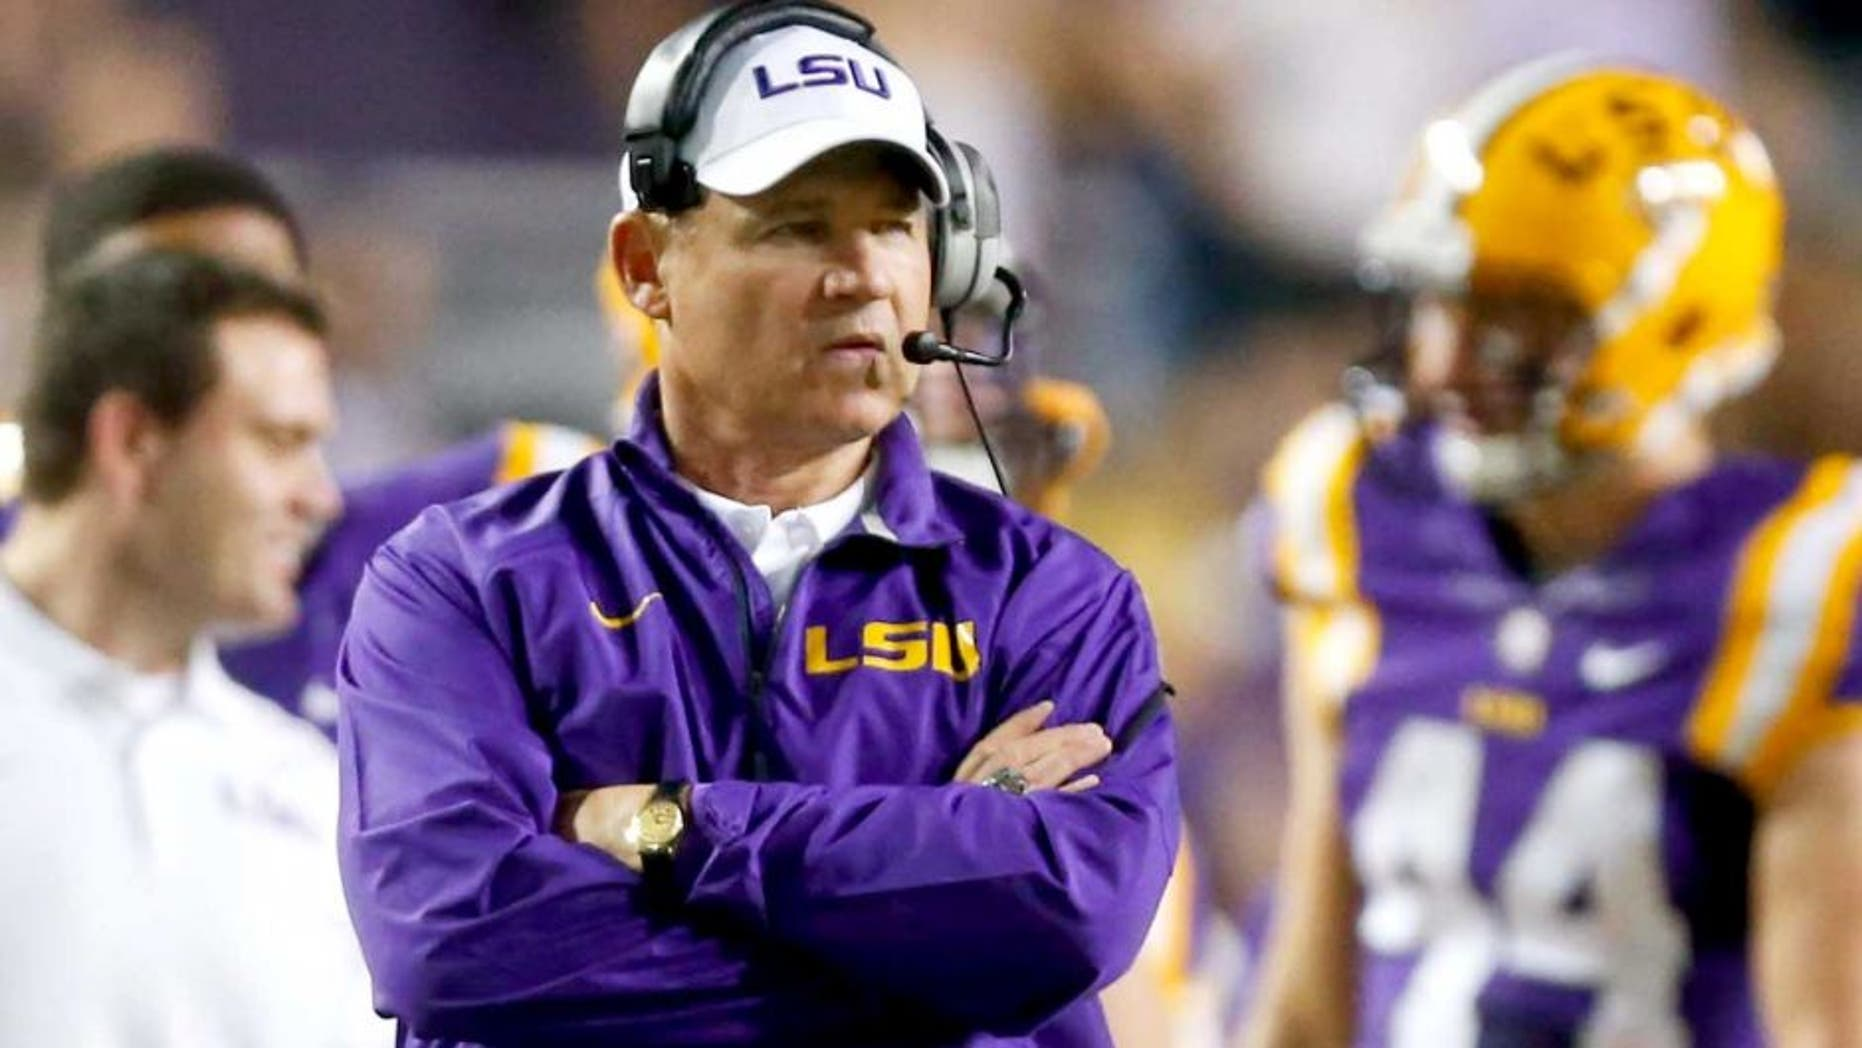 Sep 27, 2014; Baton Rouge, LA, USA; LSU Tigers head coach Les Miles against the New Mexico State Aggies during the second half of a game at Tiger Stadium. LSU defeated New Mexico State 63-7. Mandatory Credit: Derick E. Hingle-USA TODAY Sports